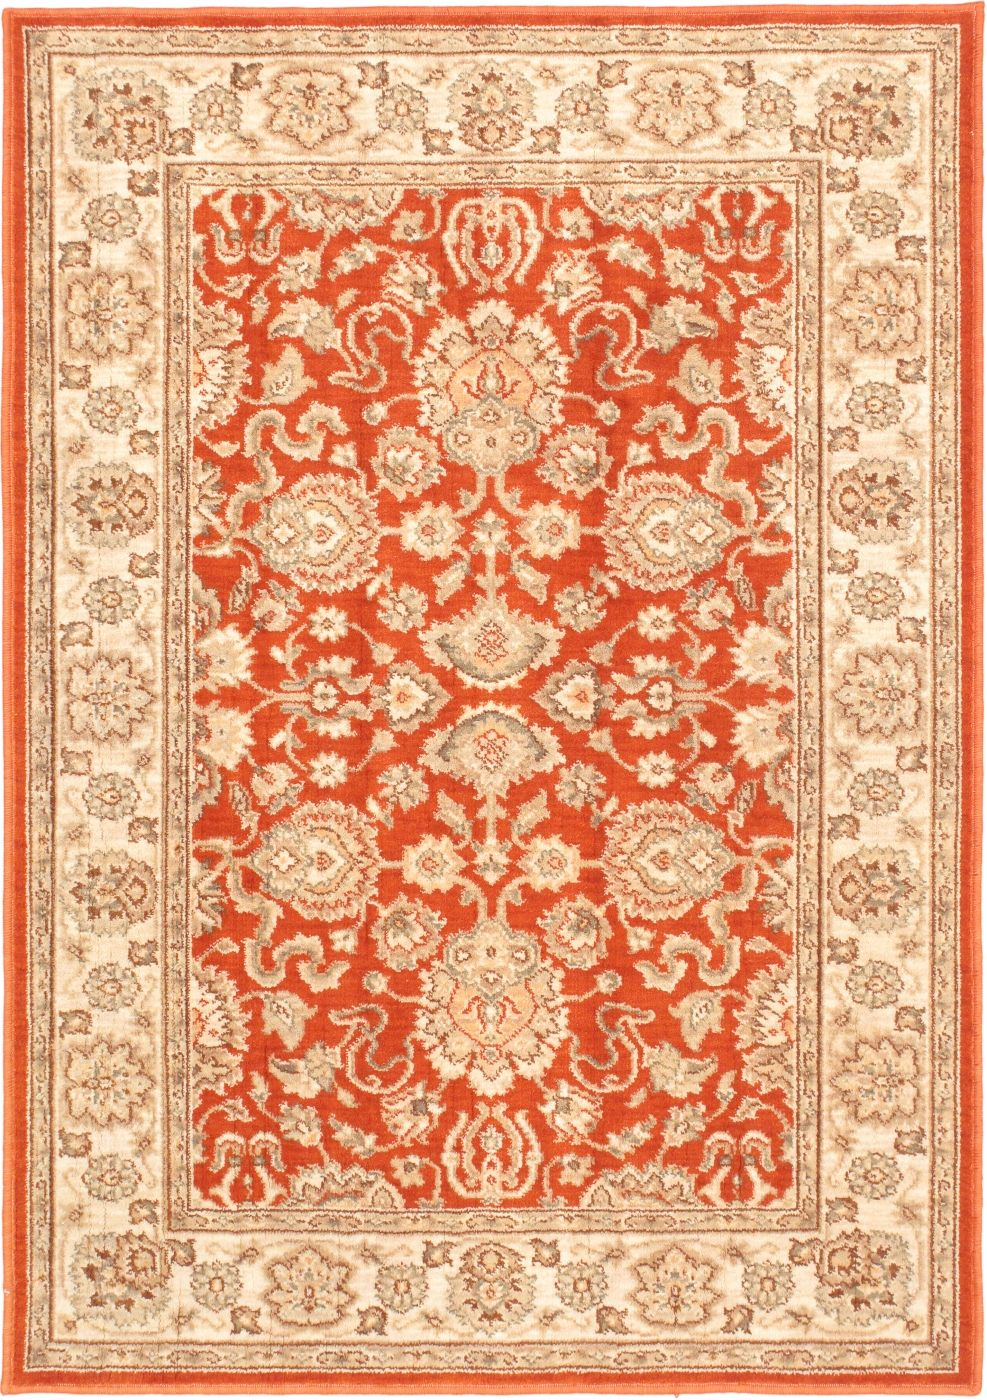 ecarpet gallery lotus garden btor traditional area rug collection